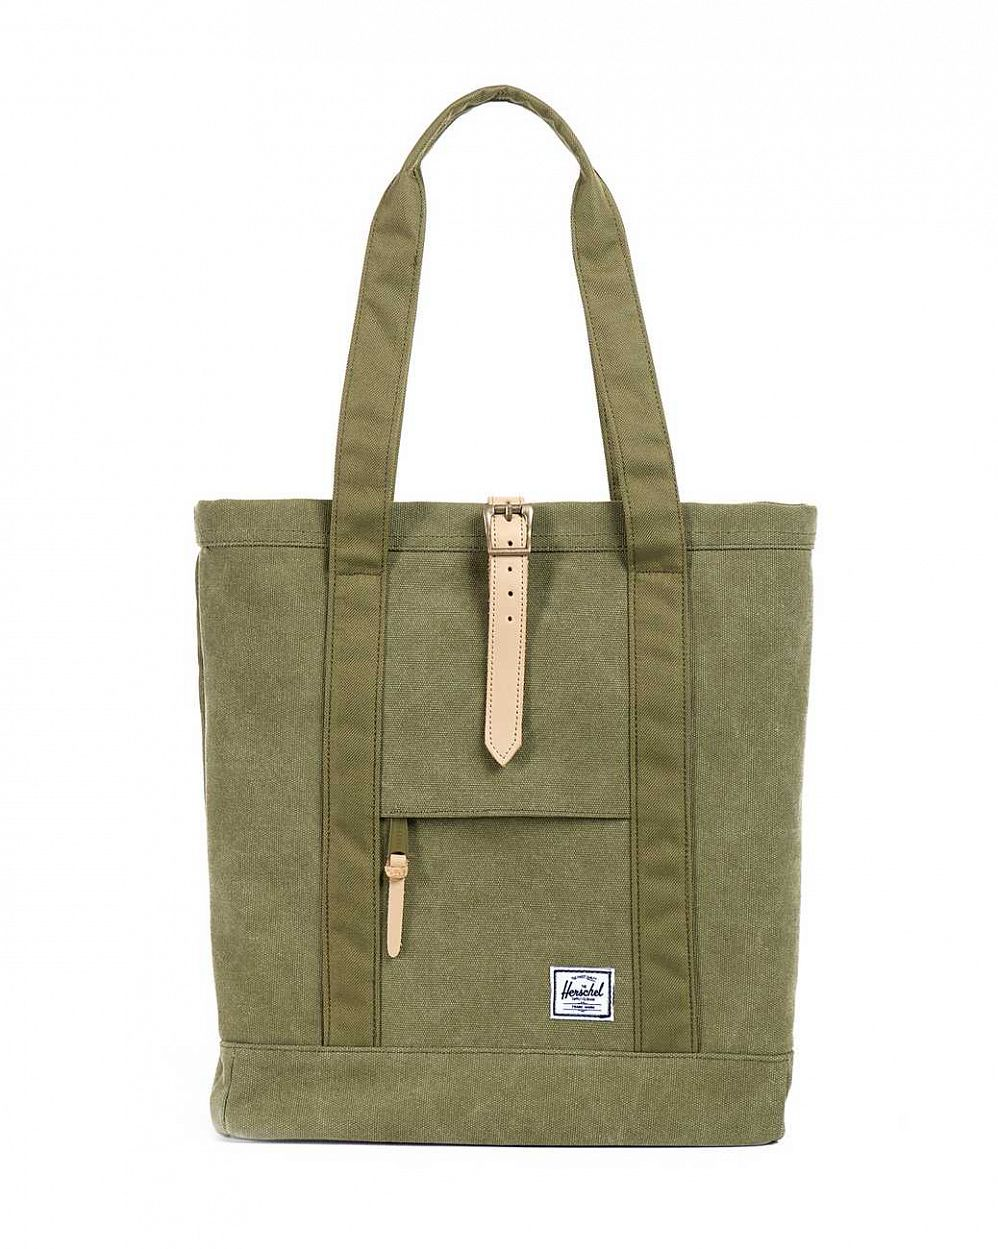 купить Сумка Herschel Market Canvas Washed Army Army в Москве